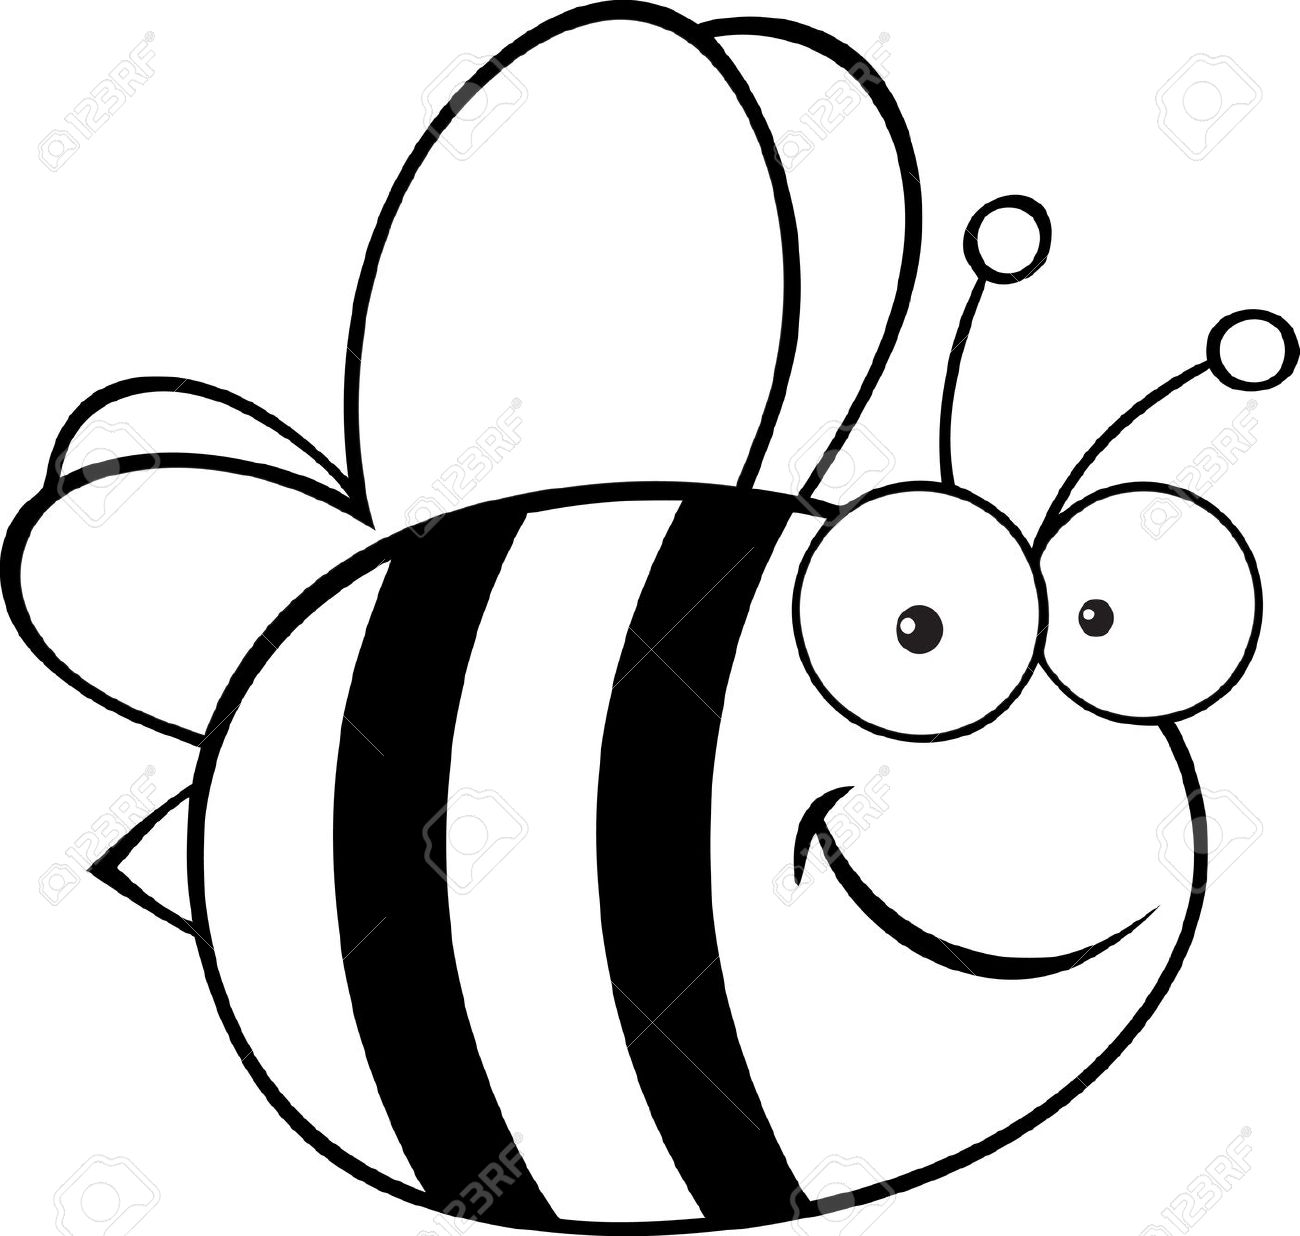 1300x1236 Bees Clipart Line Drawing